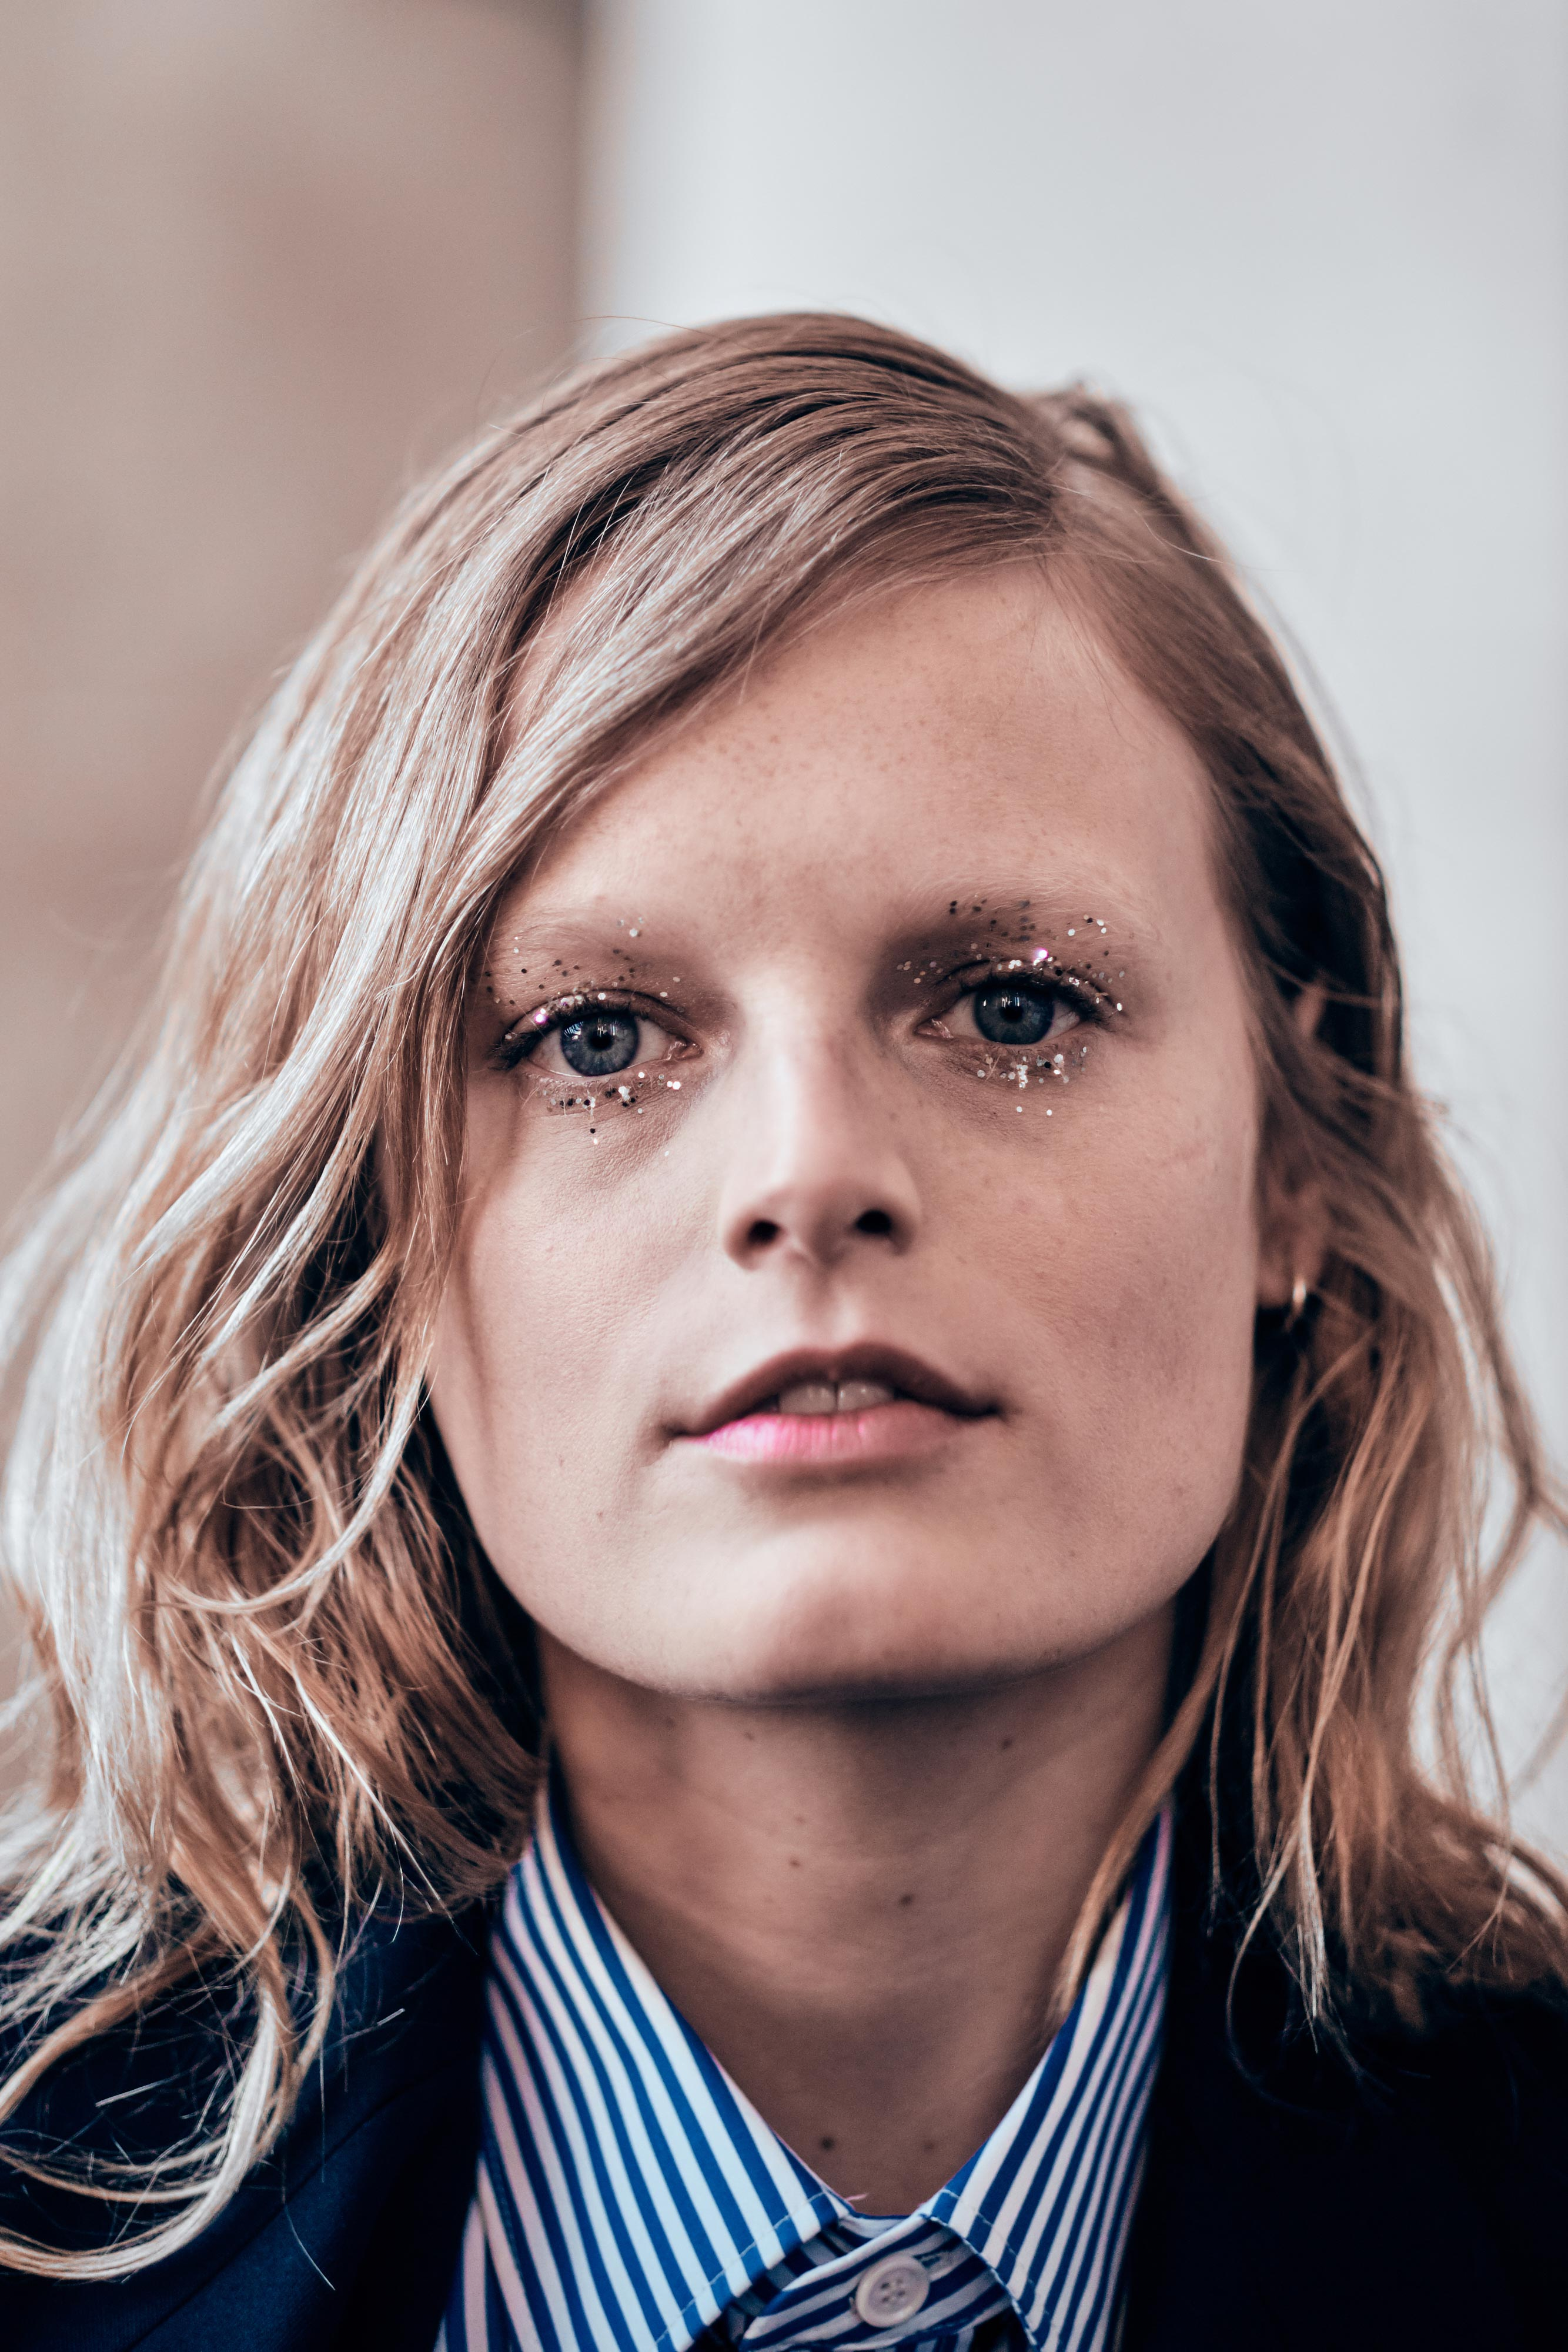 The 31-year old daughter of father (?) and mother(?) Hanne Gaby Odiele in 2020 photo. Hanne Gaby Odiele earned a million dollar salary - leaving the net worth at 8 million in 2020